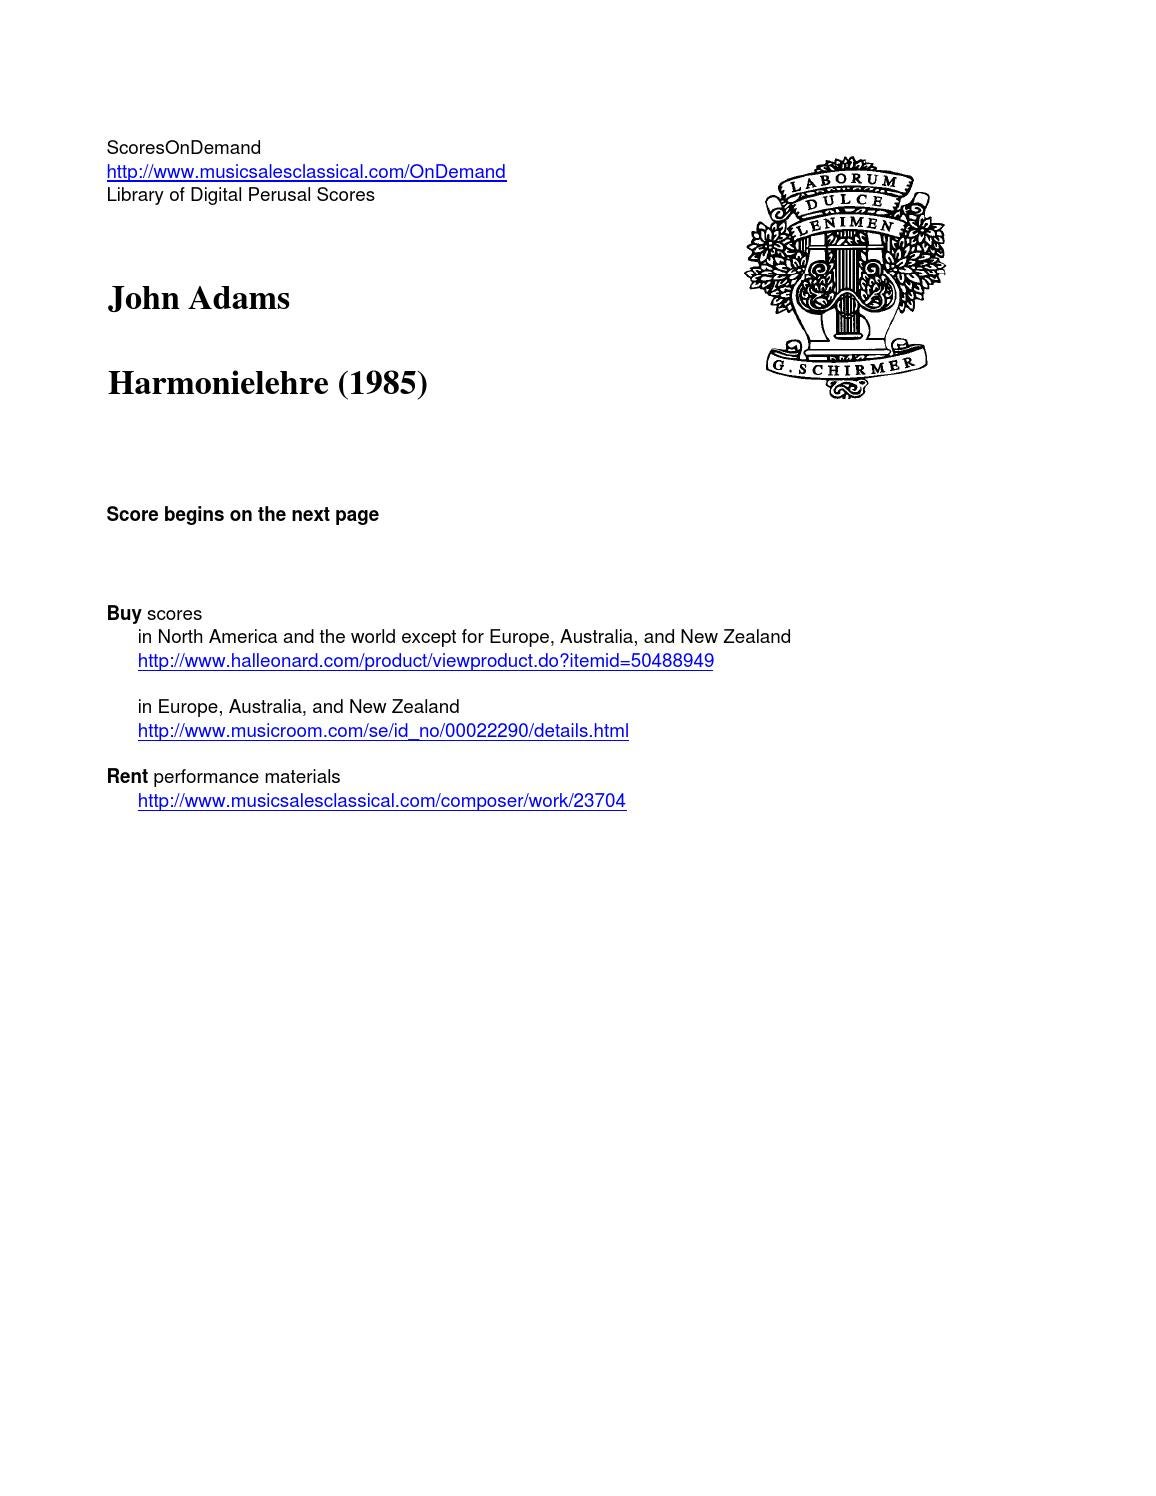 adams harmonielehre by scoresondemand issuu